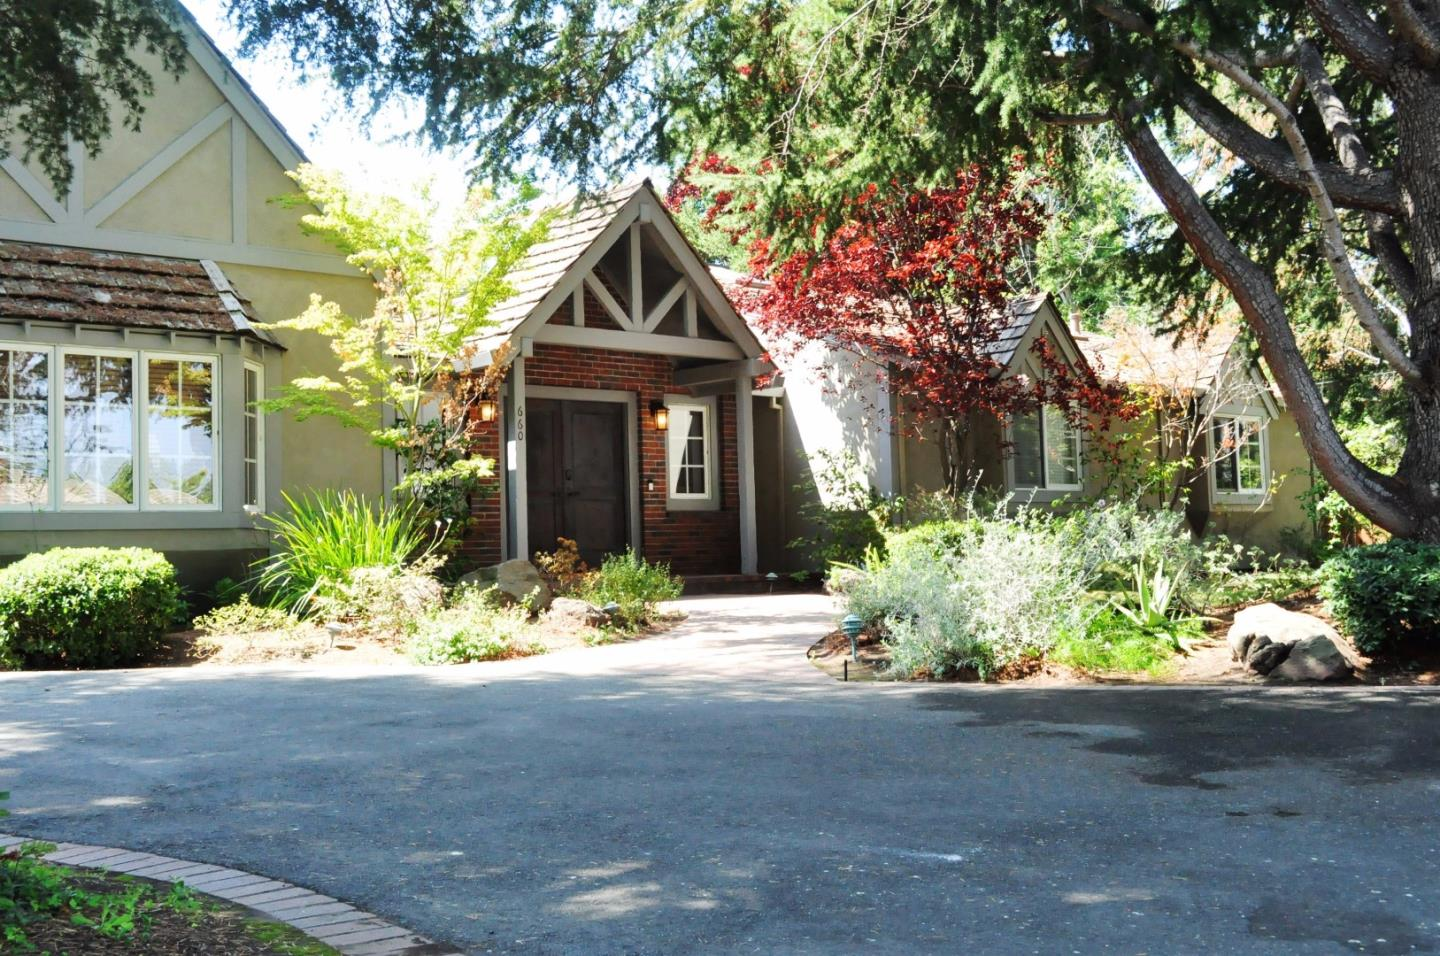 Single Family Home for Rent at 660 Hollingsworth Drive Los Altos, California 94022 United States